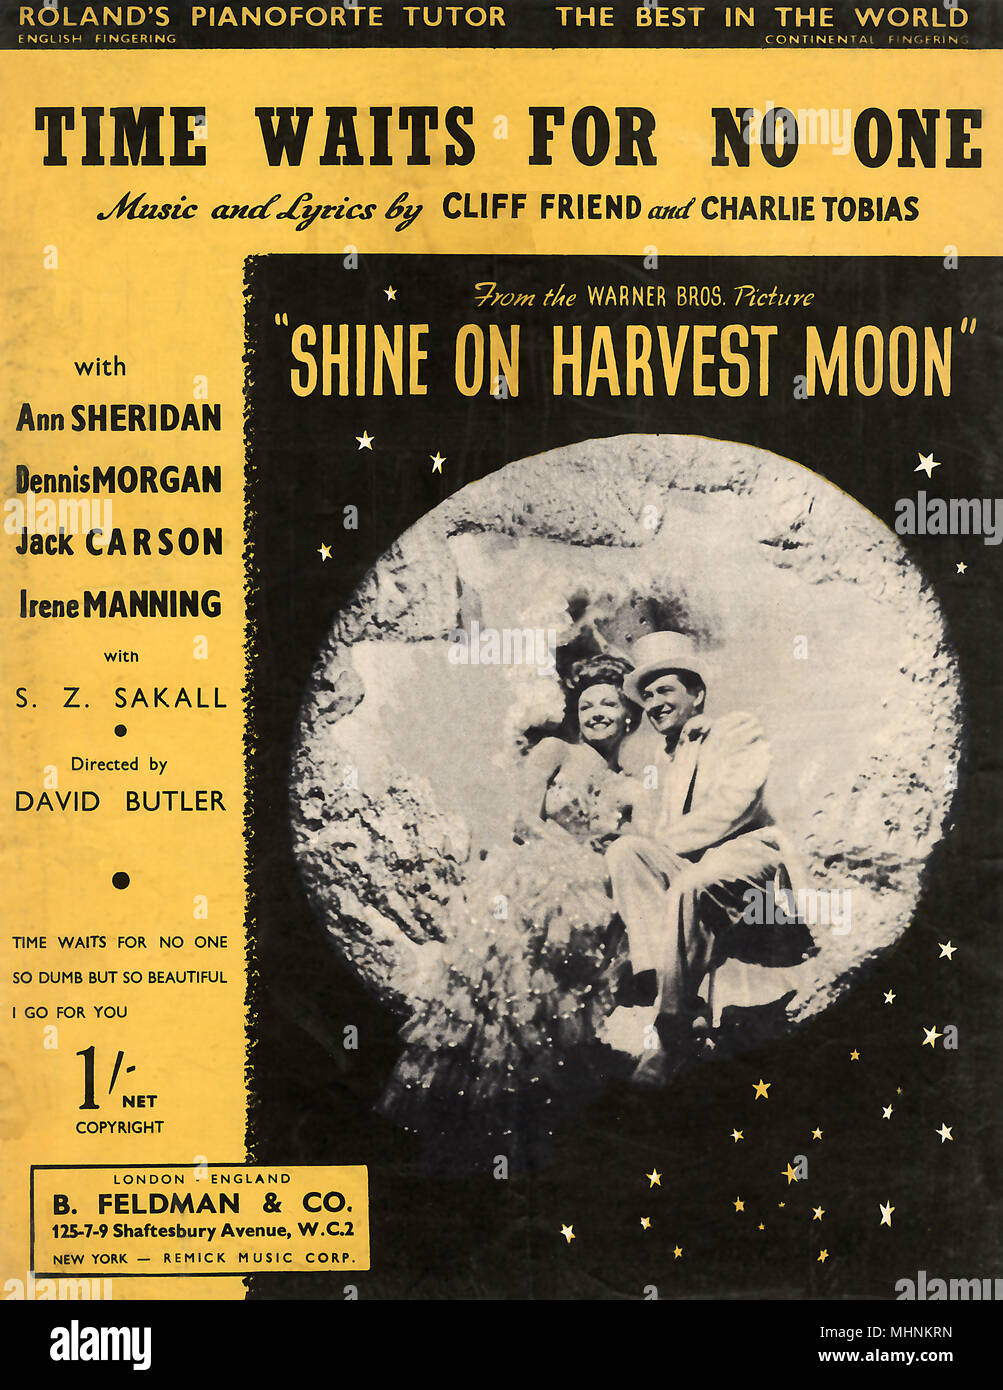 'Time waits for no one' - Music Sheet Cover, Time Waits for No One From the Warner Bros. Picture Shine on Harvest Moon, starring Ann Sheridan, Dennis Morgan, Jack Carson, and Irene Manning. Music and Lyrics by Cliff Friend and Charlie Tobias. An illustration with a photography of Ann Sheridan and Dennis Morgan sitting in front of a moon.     Date: circa 1944 - Stock Image